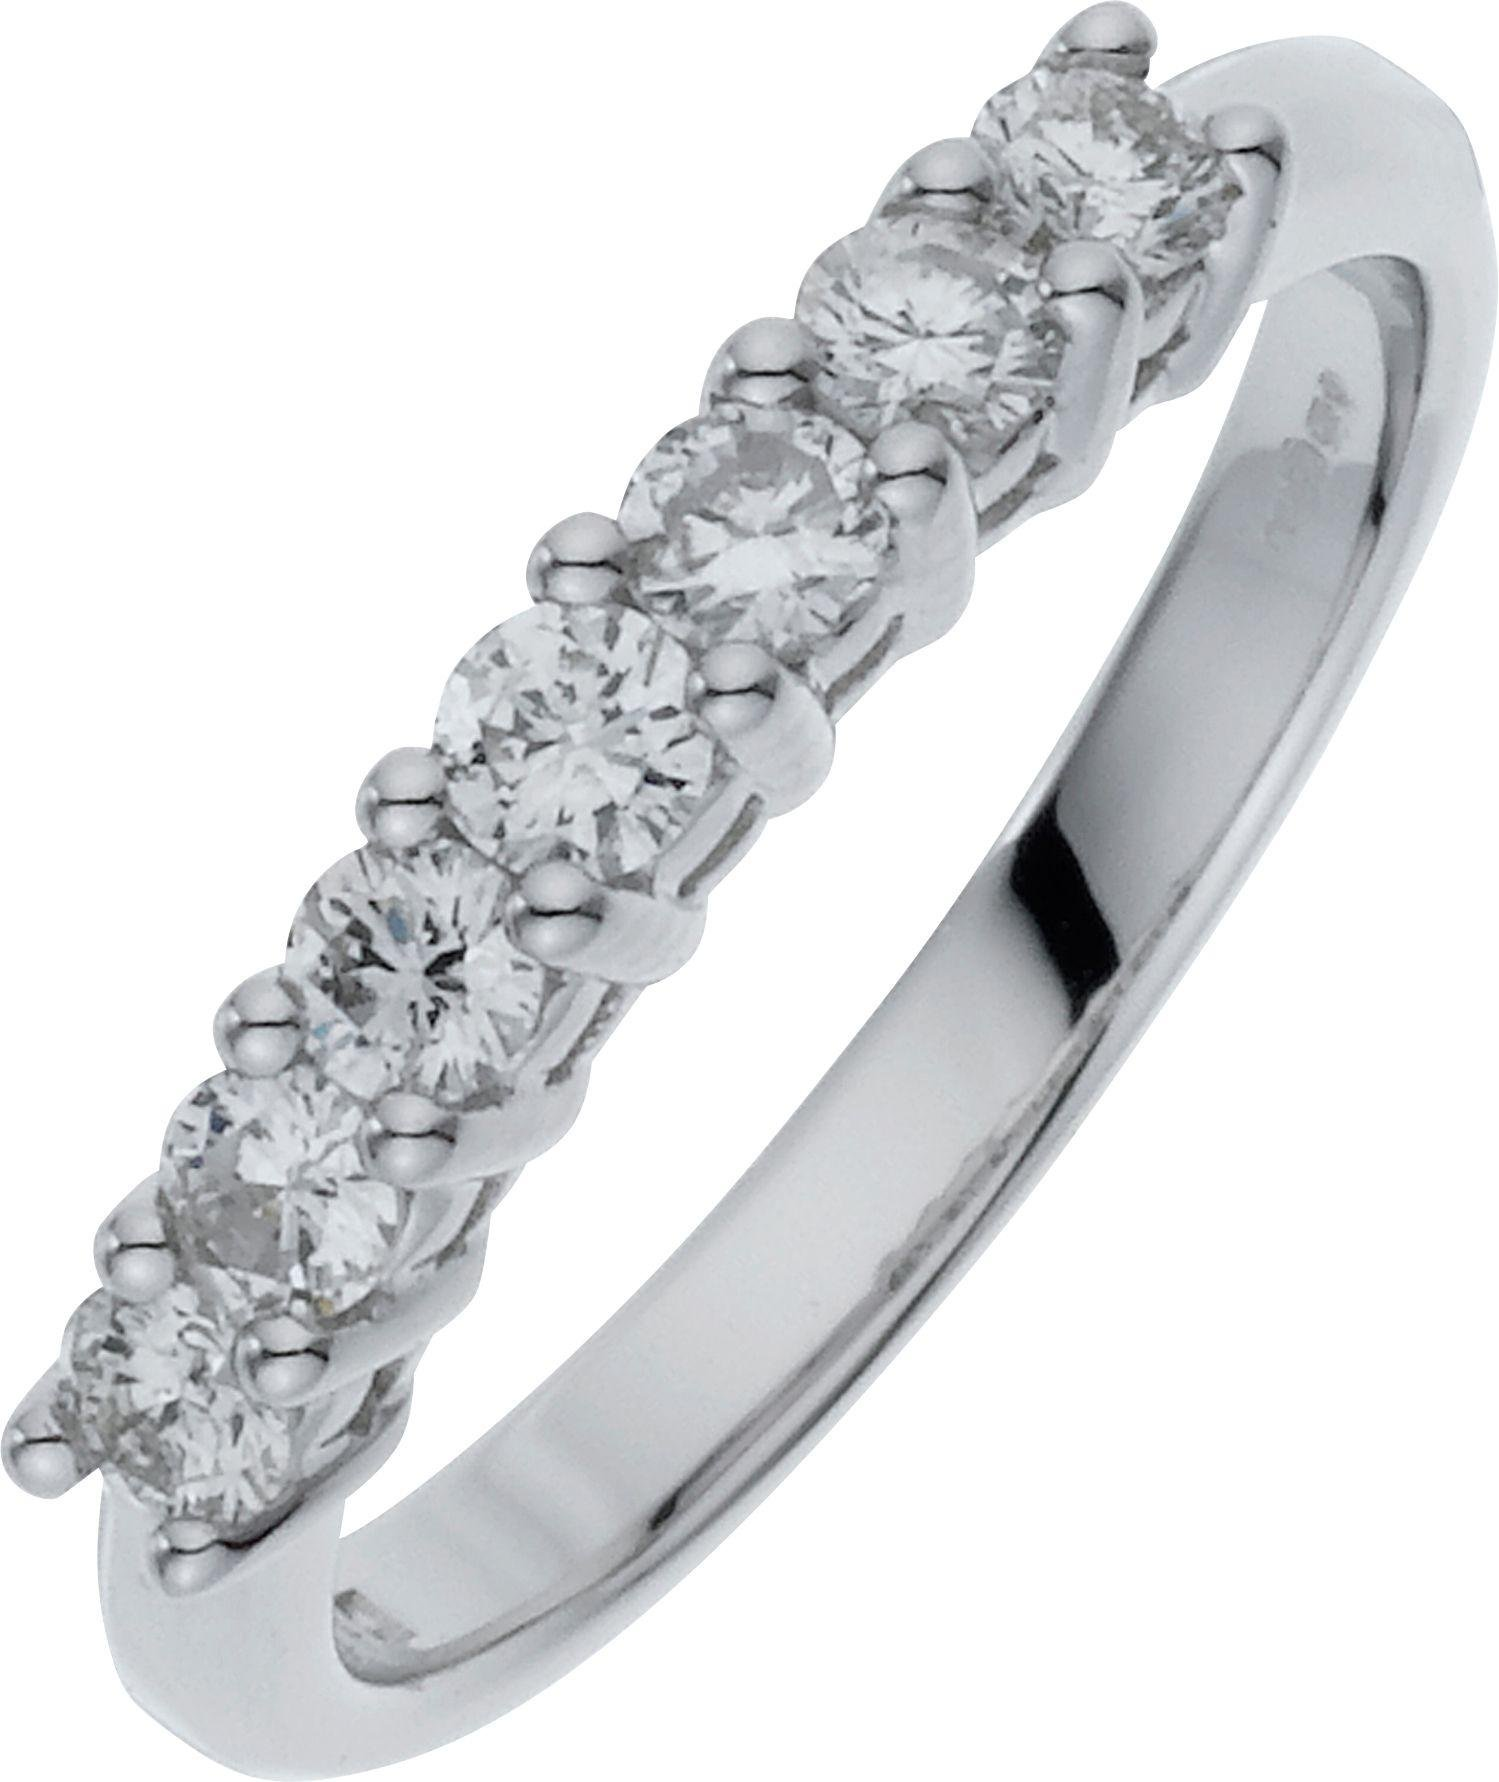 Buy Everlasting Love 9ct White Gold 7 Stone Eternity Ring R at